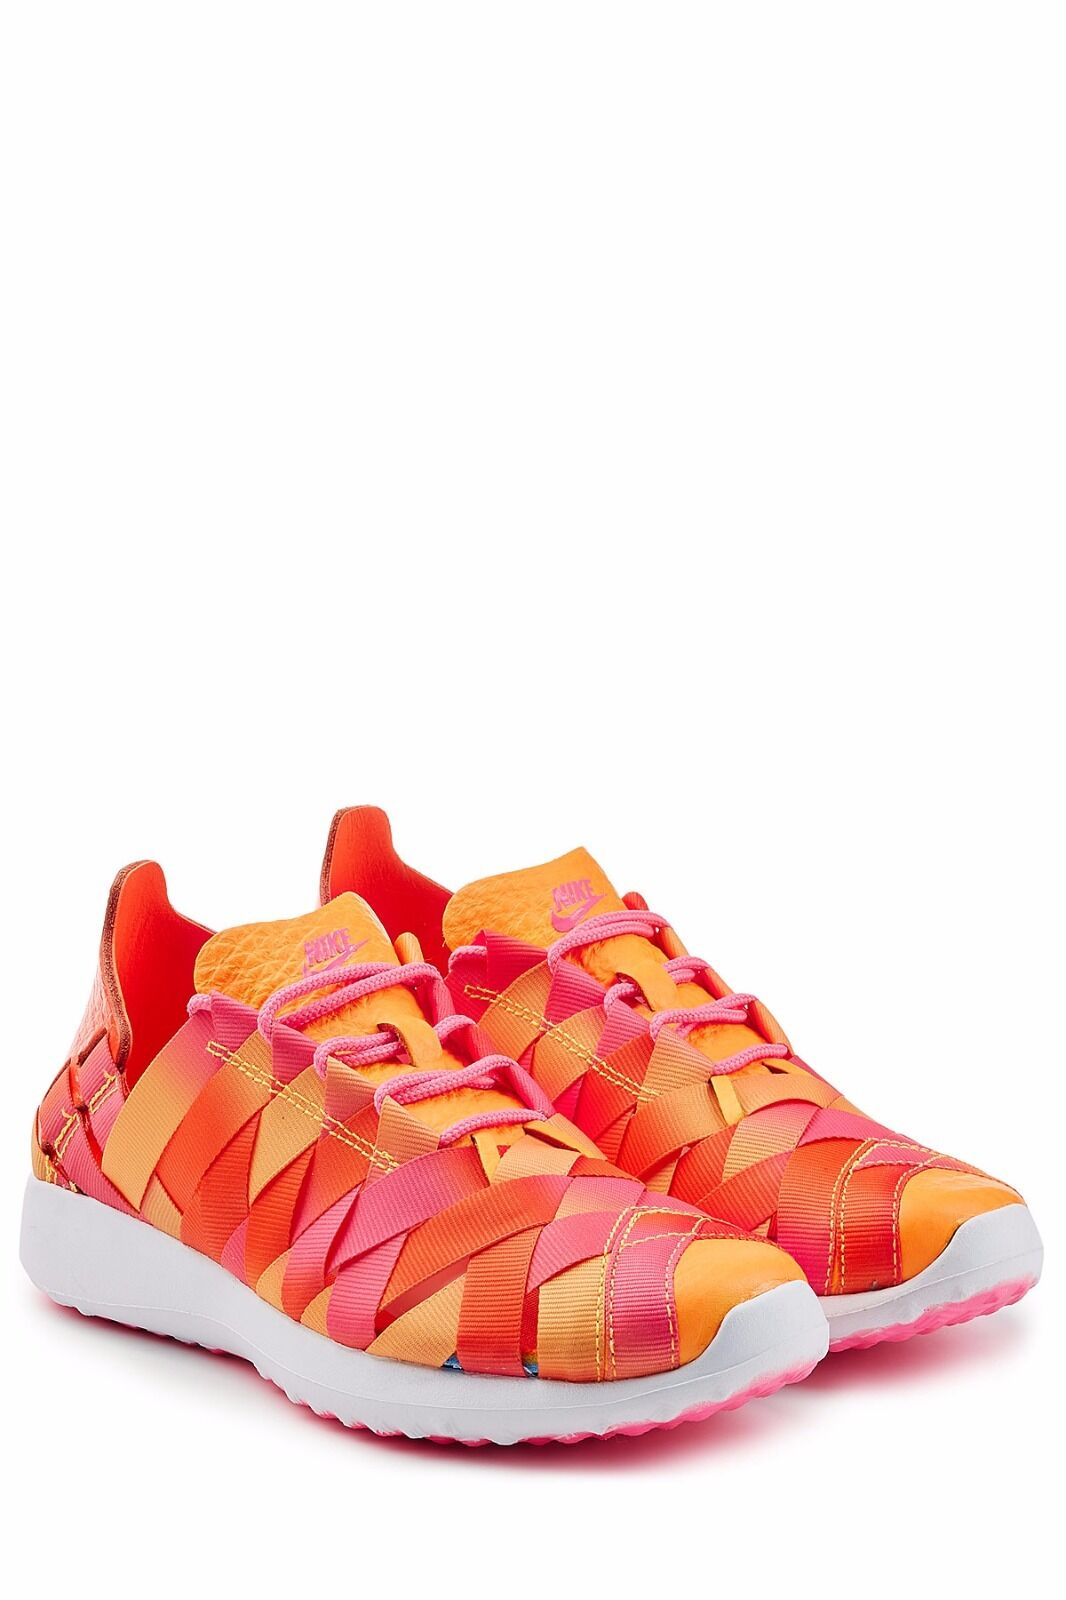 WMNS Nike Juvenate Woven PRM Casual Pink Blast/Orange-ROT Größe 4.5 UK